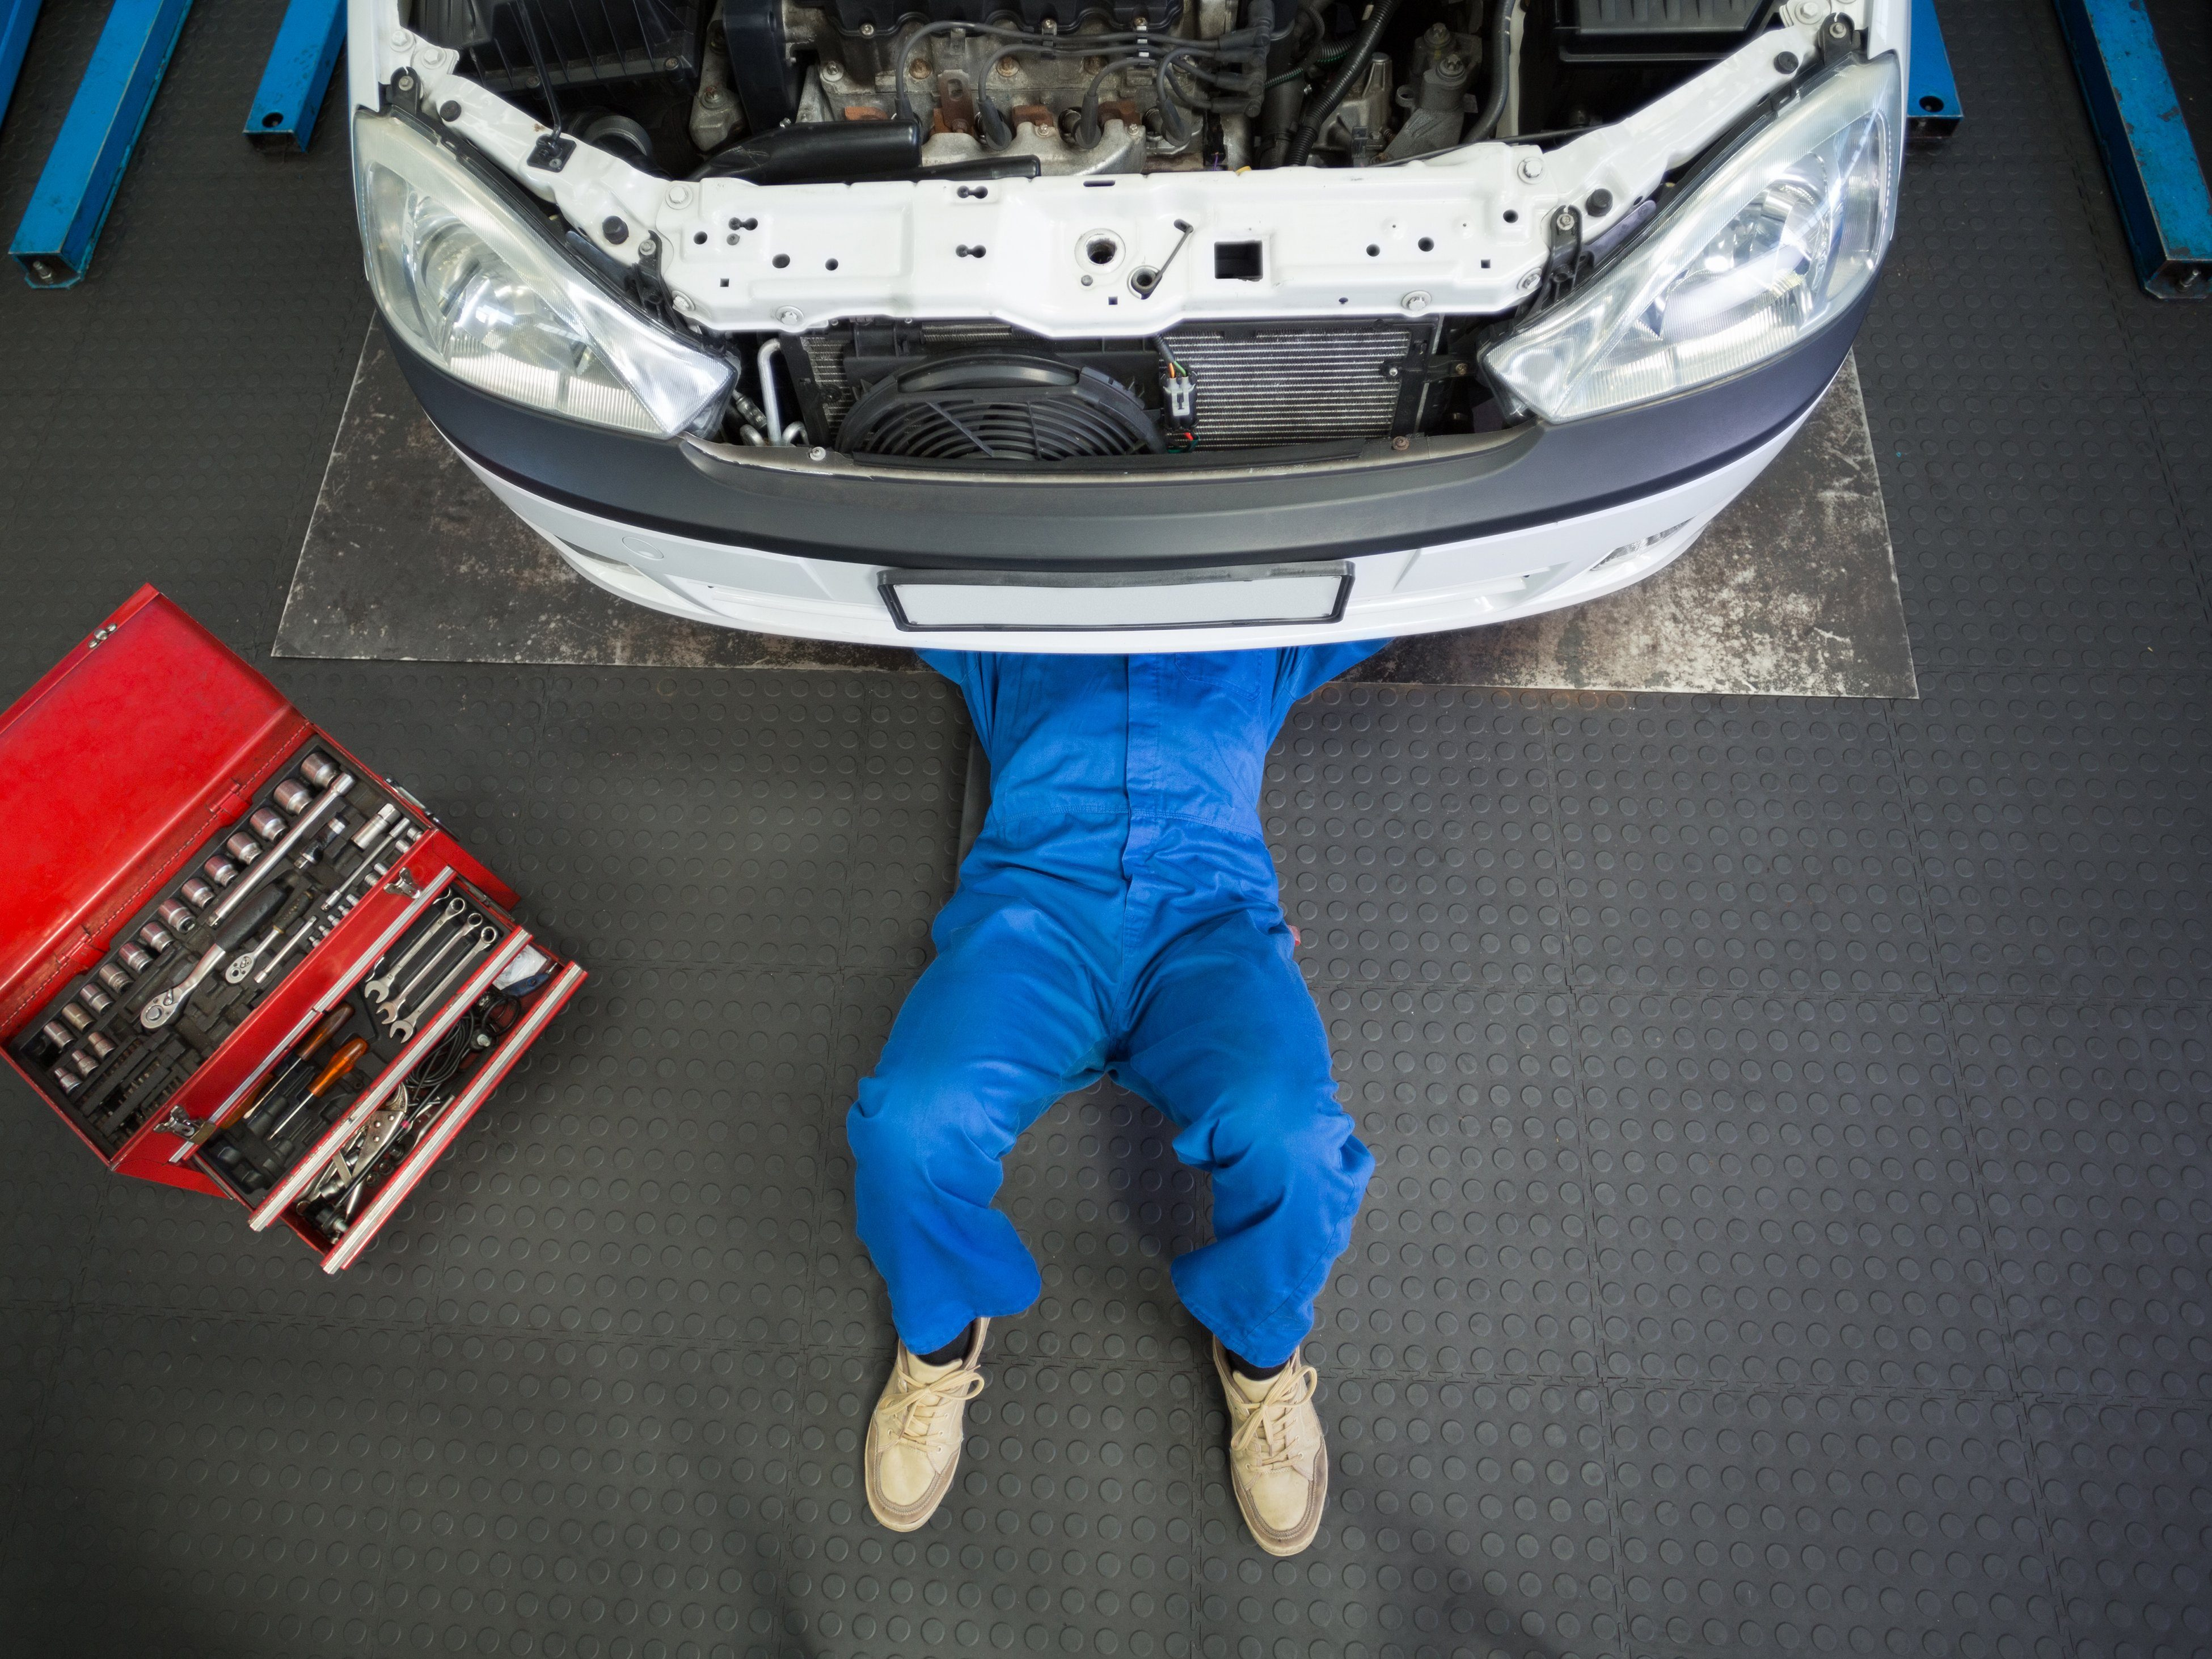 5 Ways to Avoid Getting Scammed by an Auto Mechanic